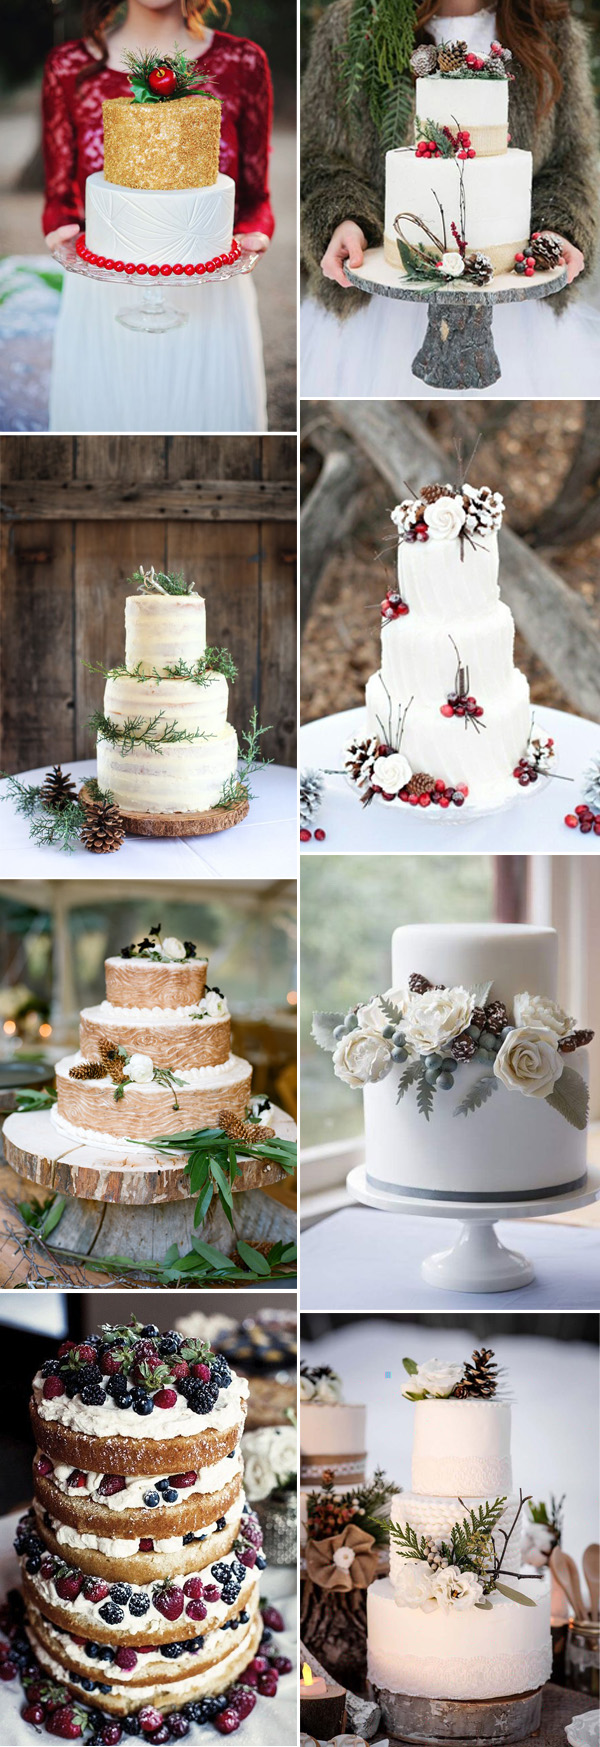 stunning winter wedding cakes with winter touches